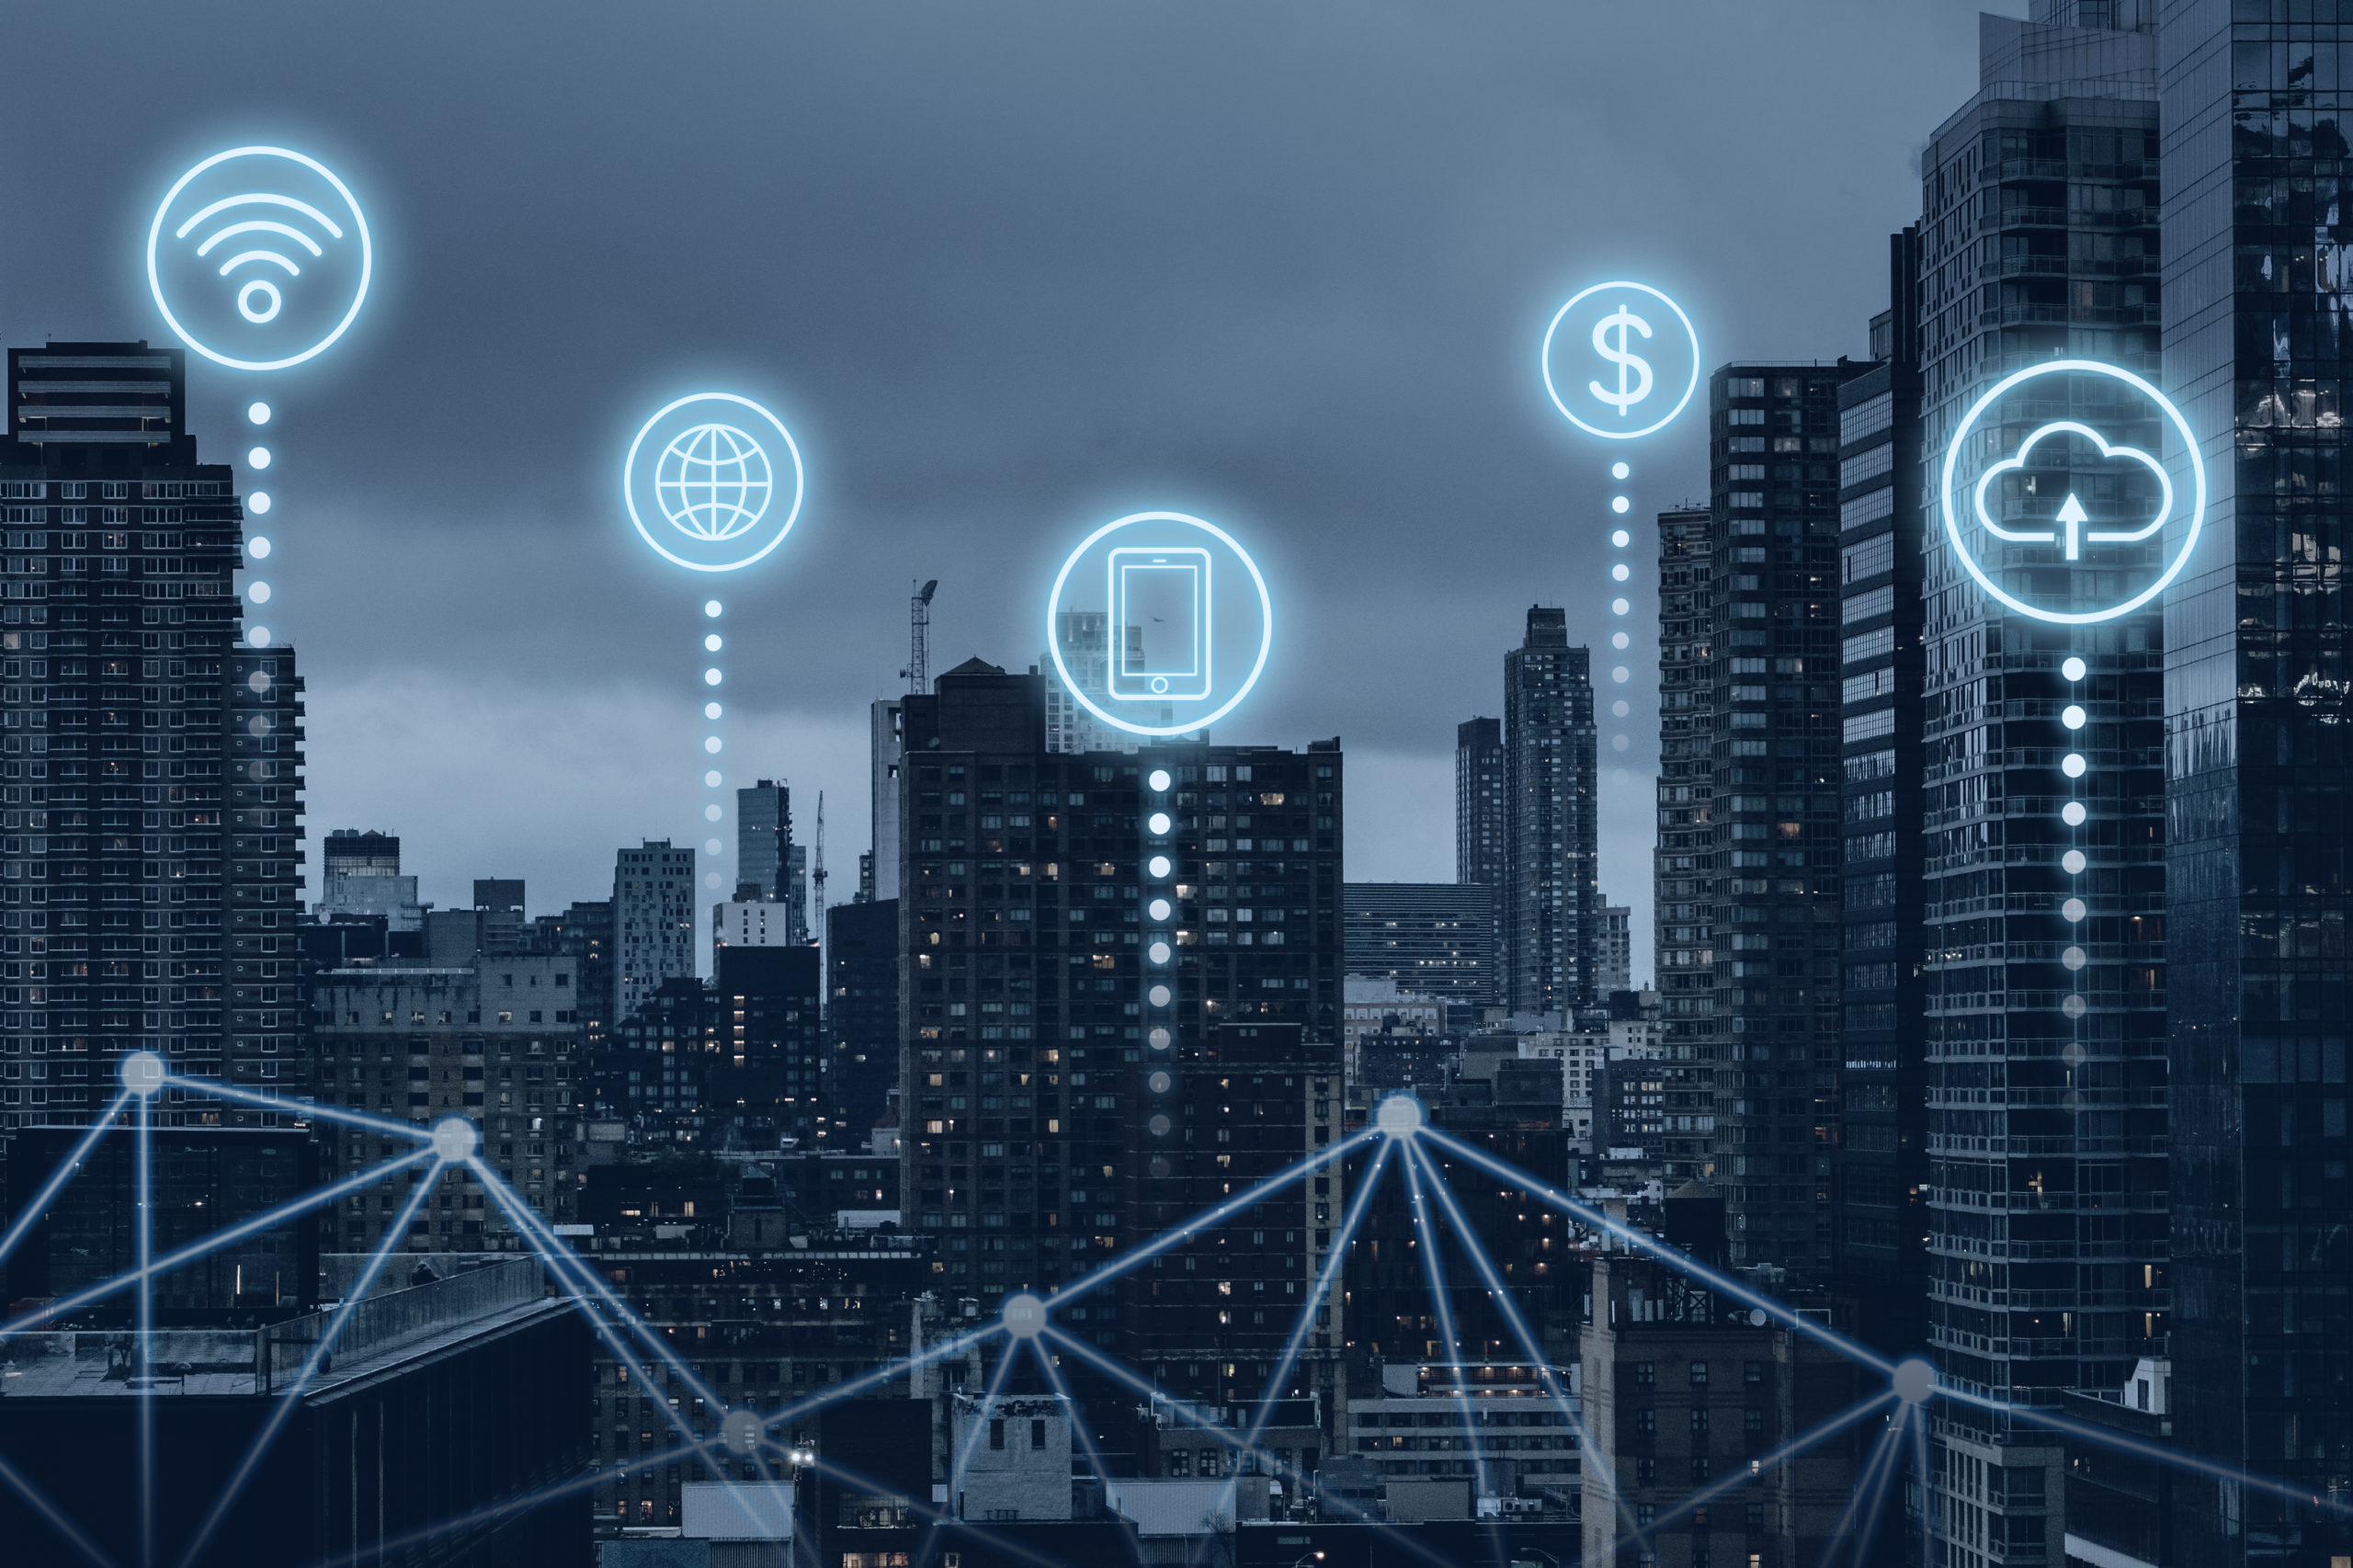 futuristic smart city with 5g global network technology scaled